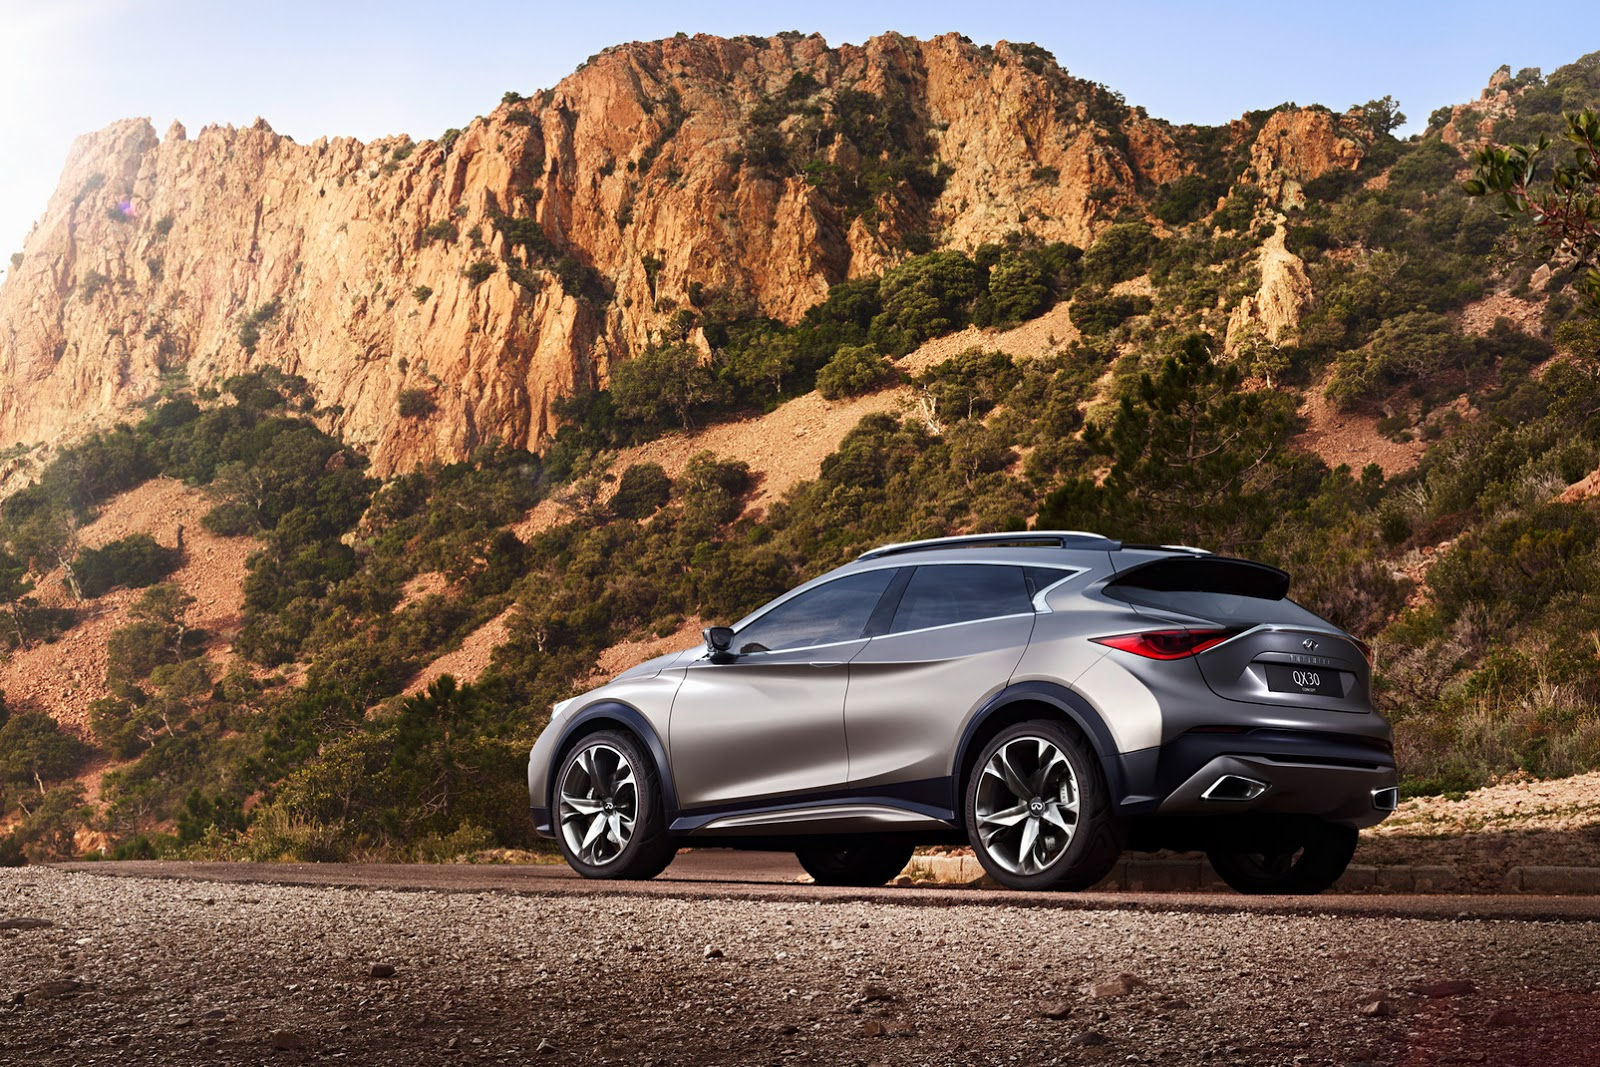 New Infiniti QX30 Concept Revealed In Detail, Previews ...